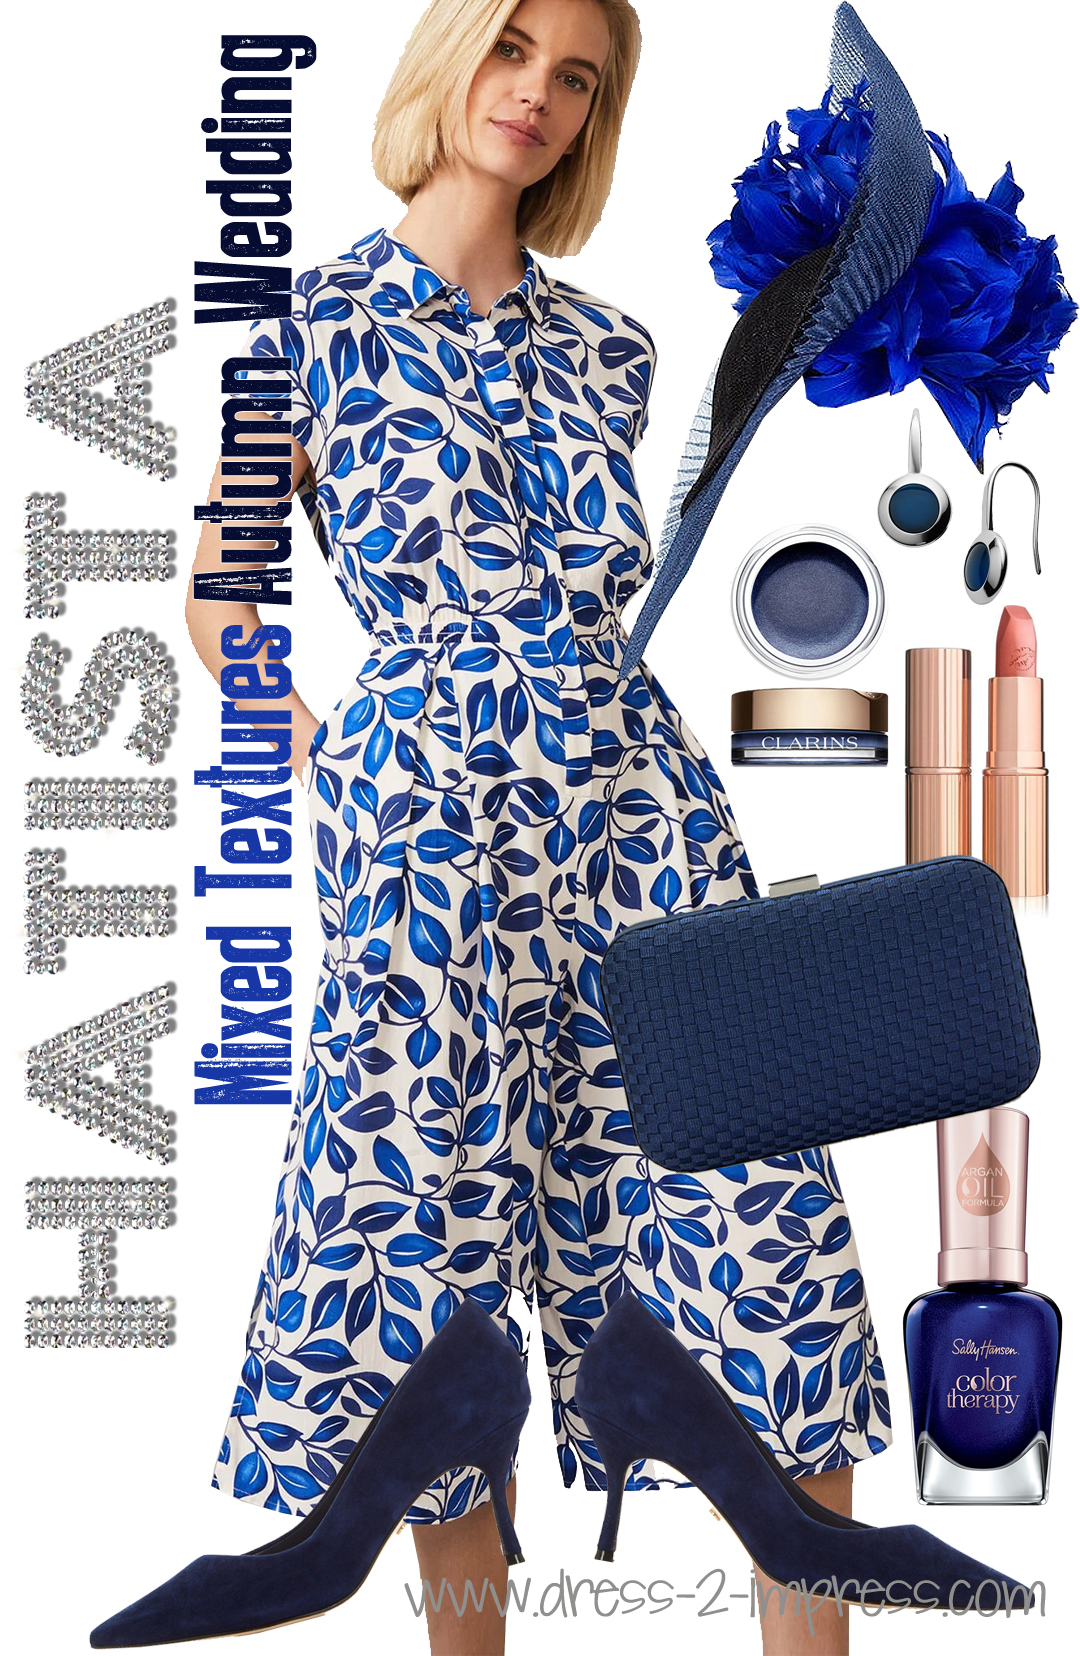 How to wear Blue to an Autumn Wedding 2020, What colours go with Royal Blue 2020. What to wear with a Royal Blue Dress 2020. Autumn Wedding Guest Outfits 2020. Autumn Outfits with Royal Blue. Autumn Wedding Mother of the Bride Outfits 2020